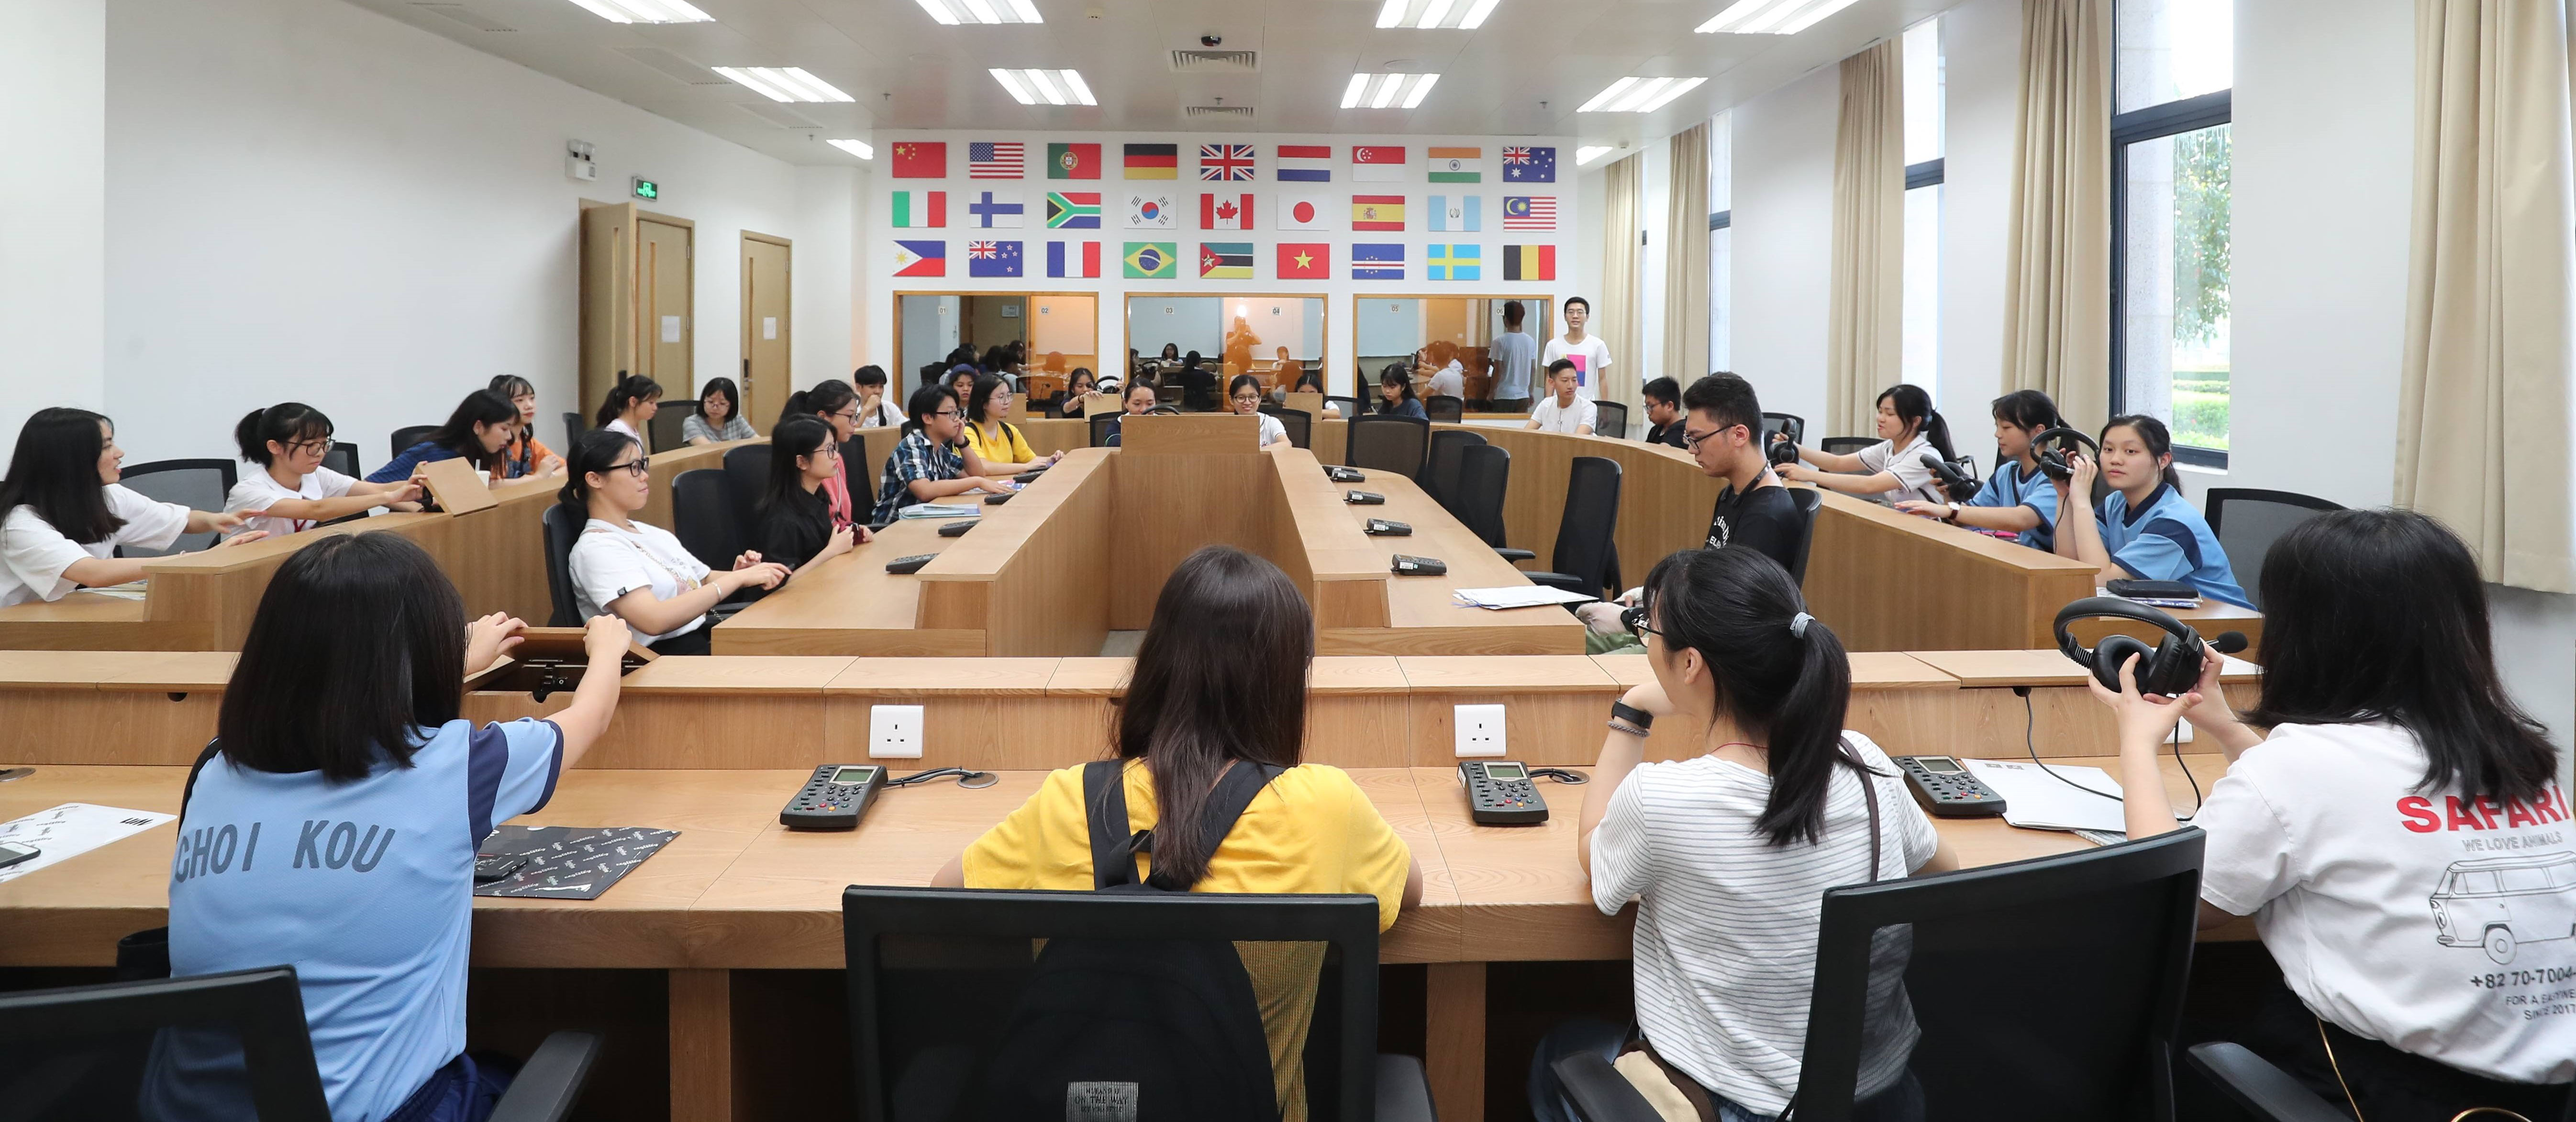 Student try out facilities in UM